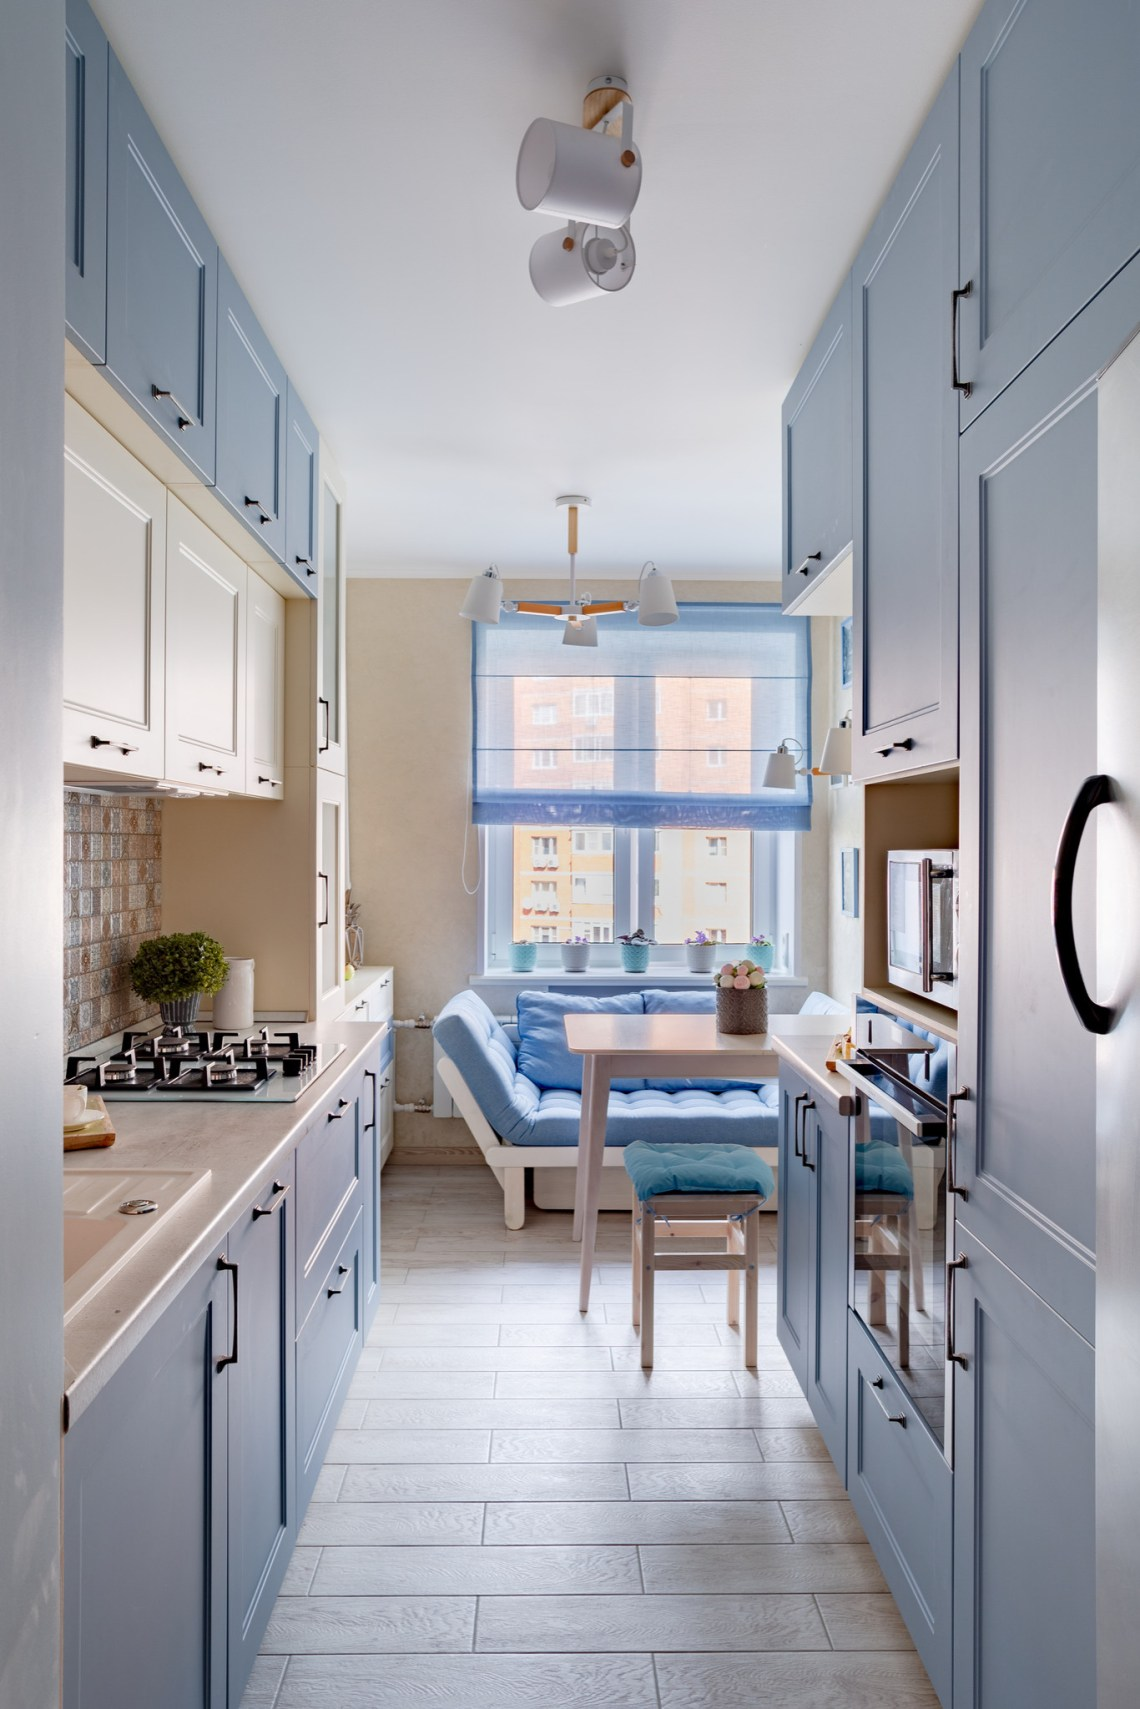 75 Beautiful Small Galley Kitchen Pictures Ideas August 2021 Houzz